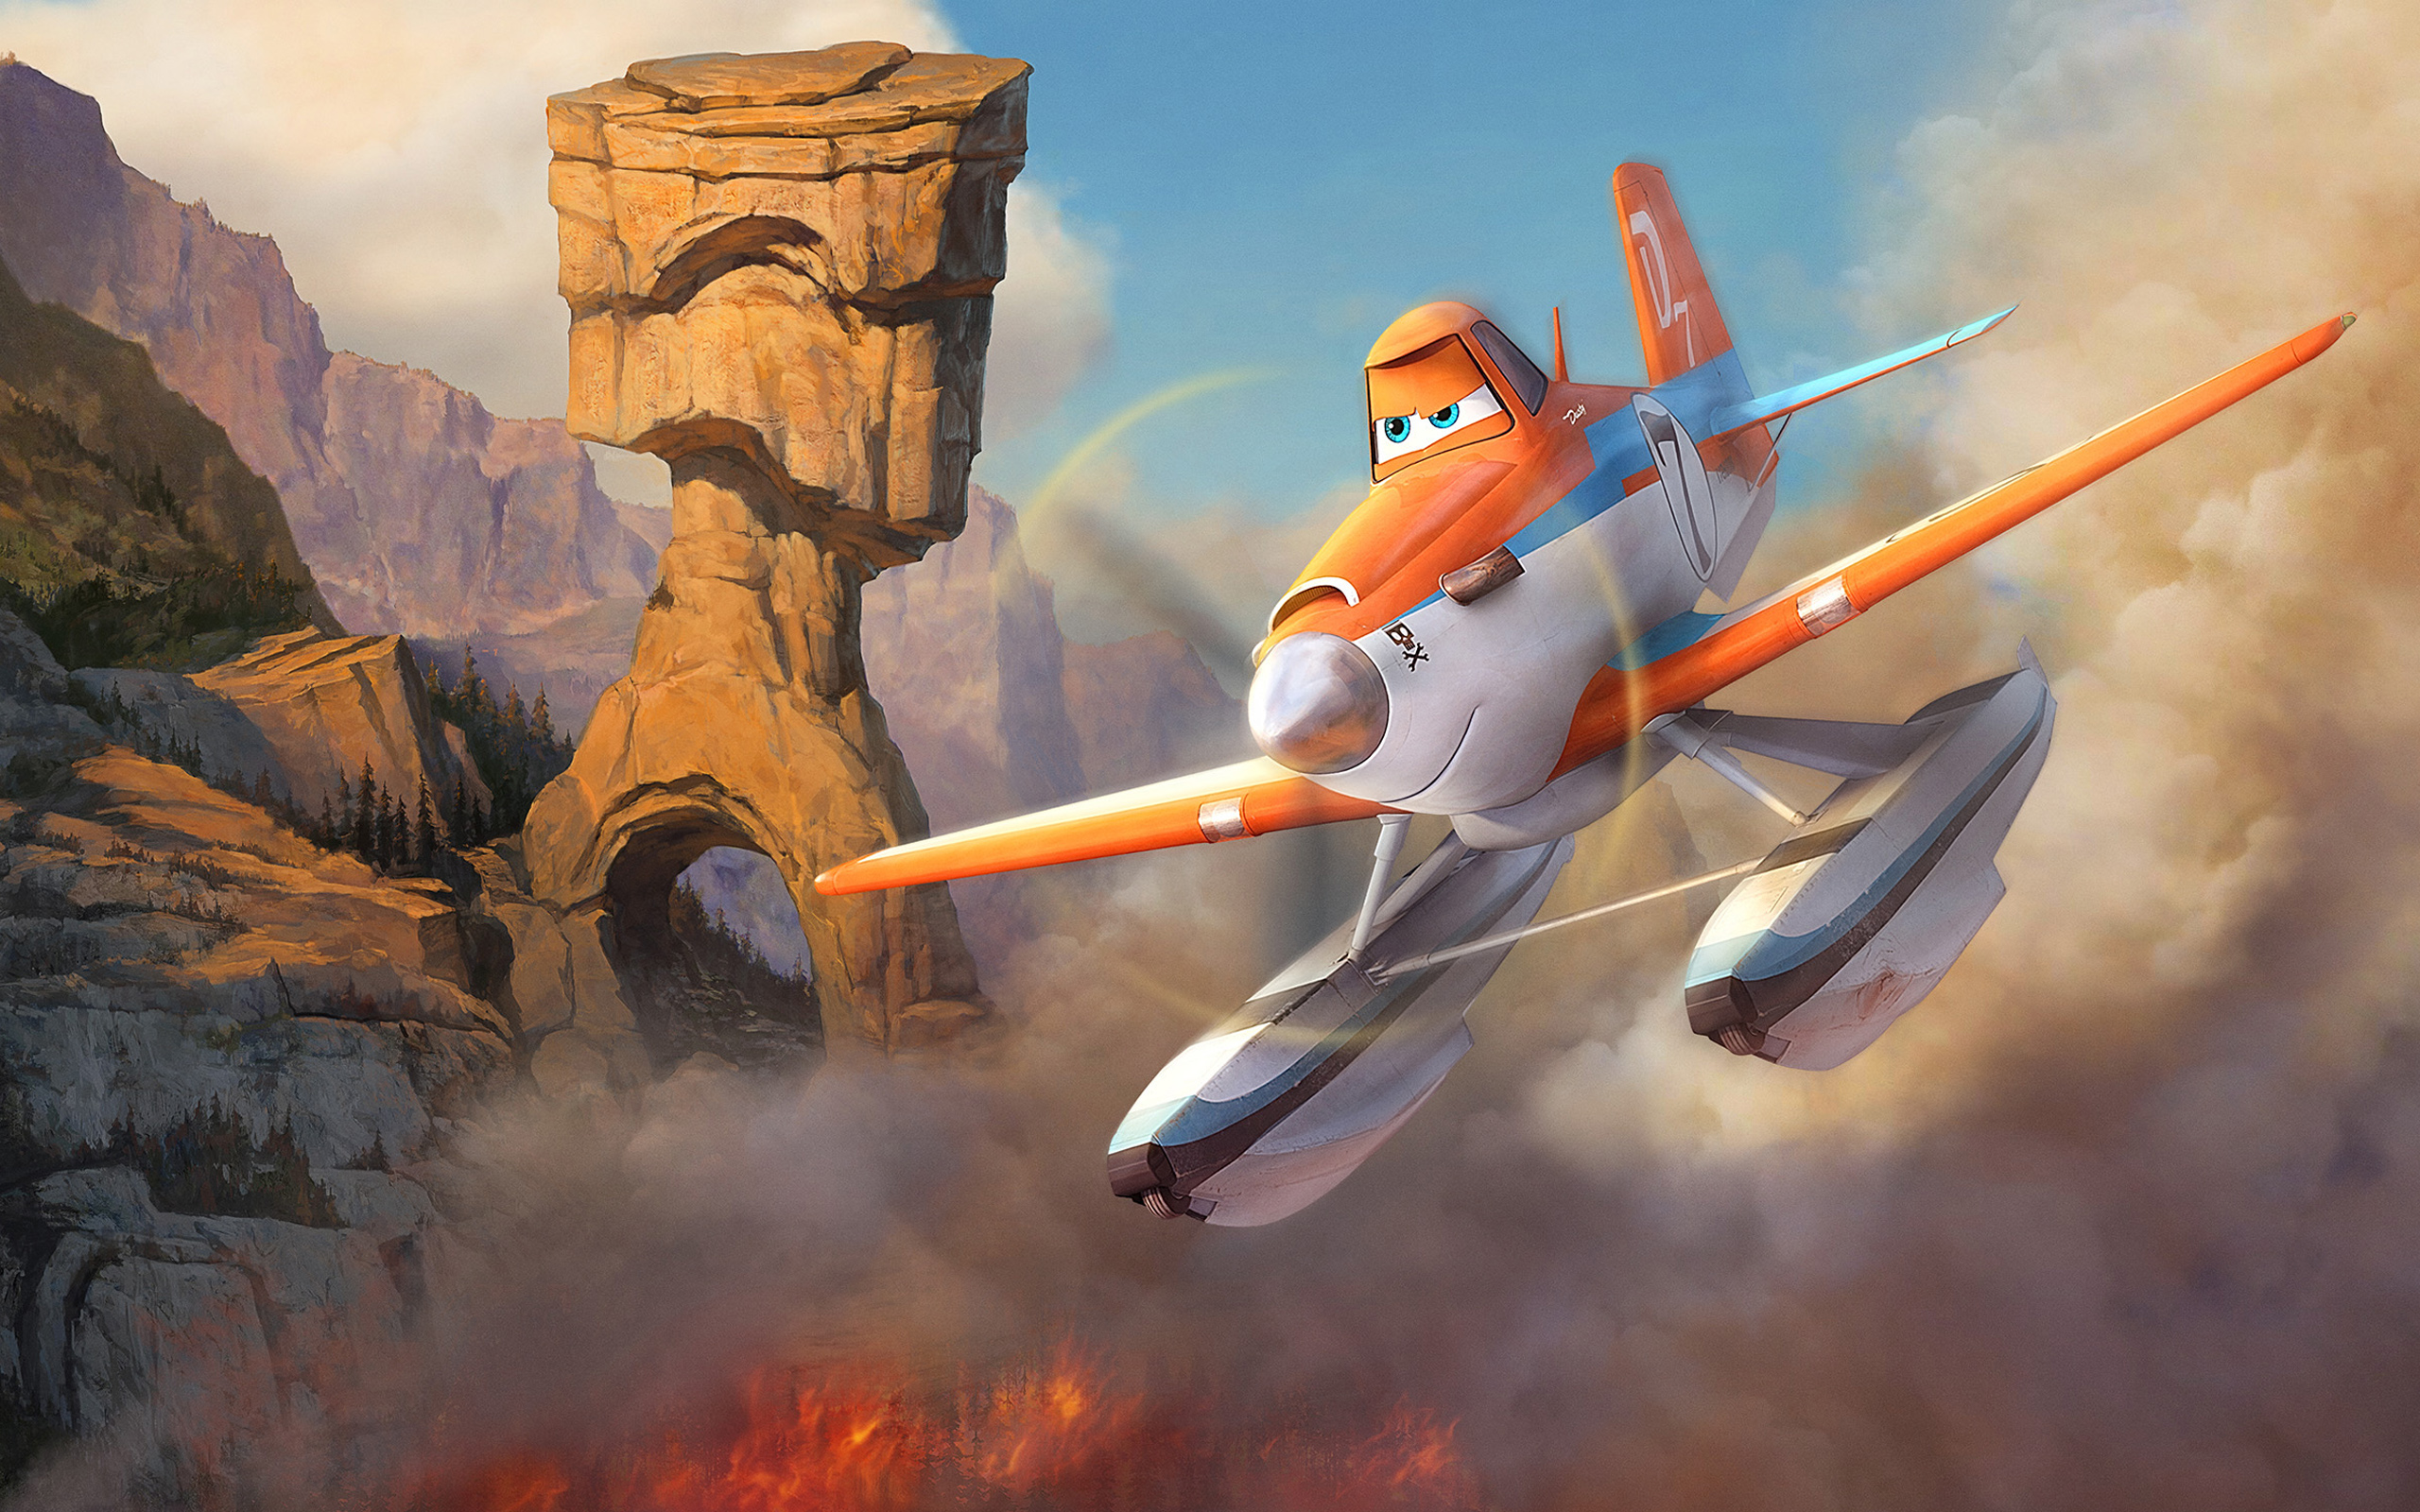 Planes Fire & Rescue 403.76 Kb